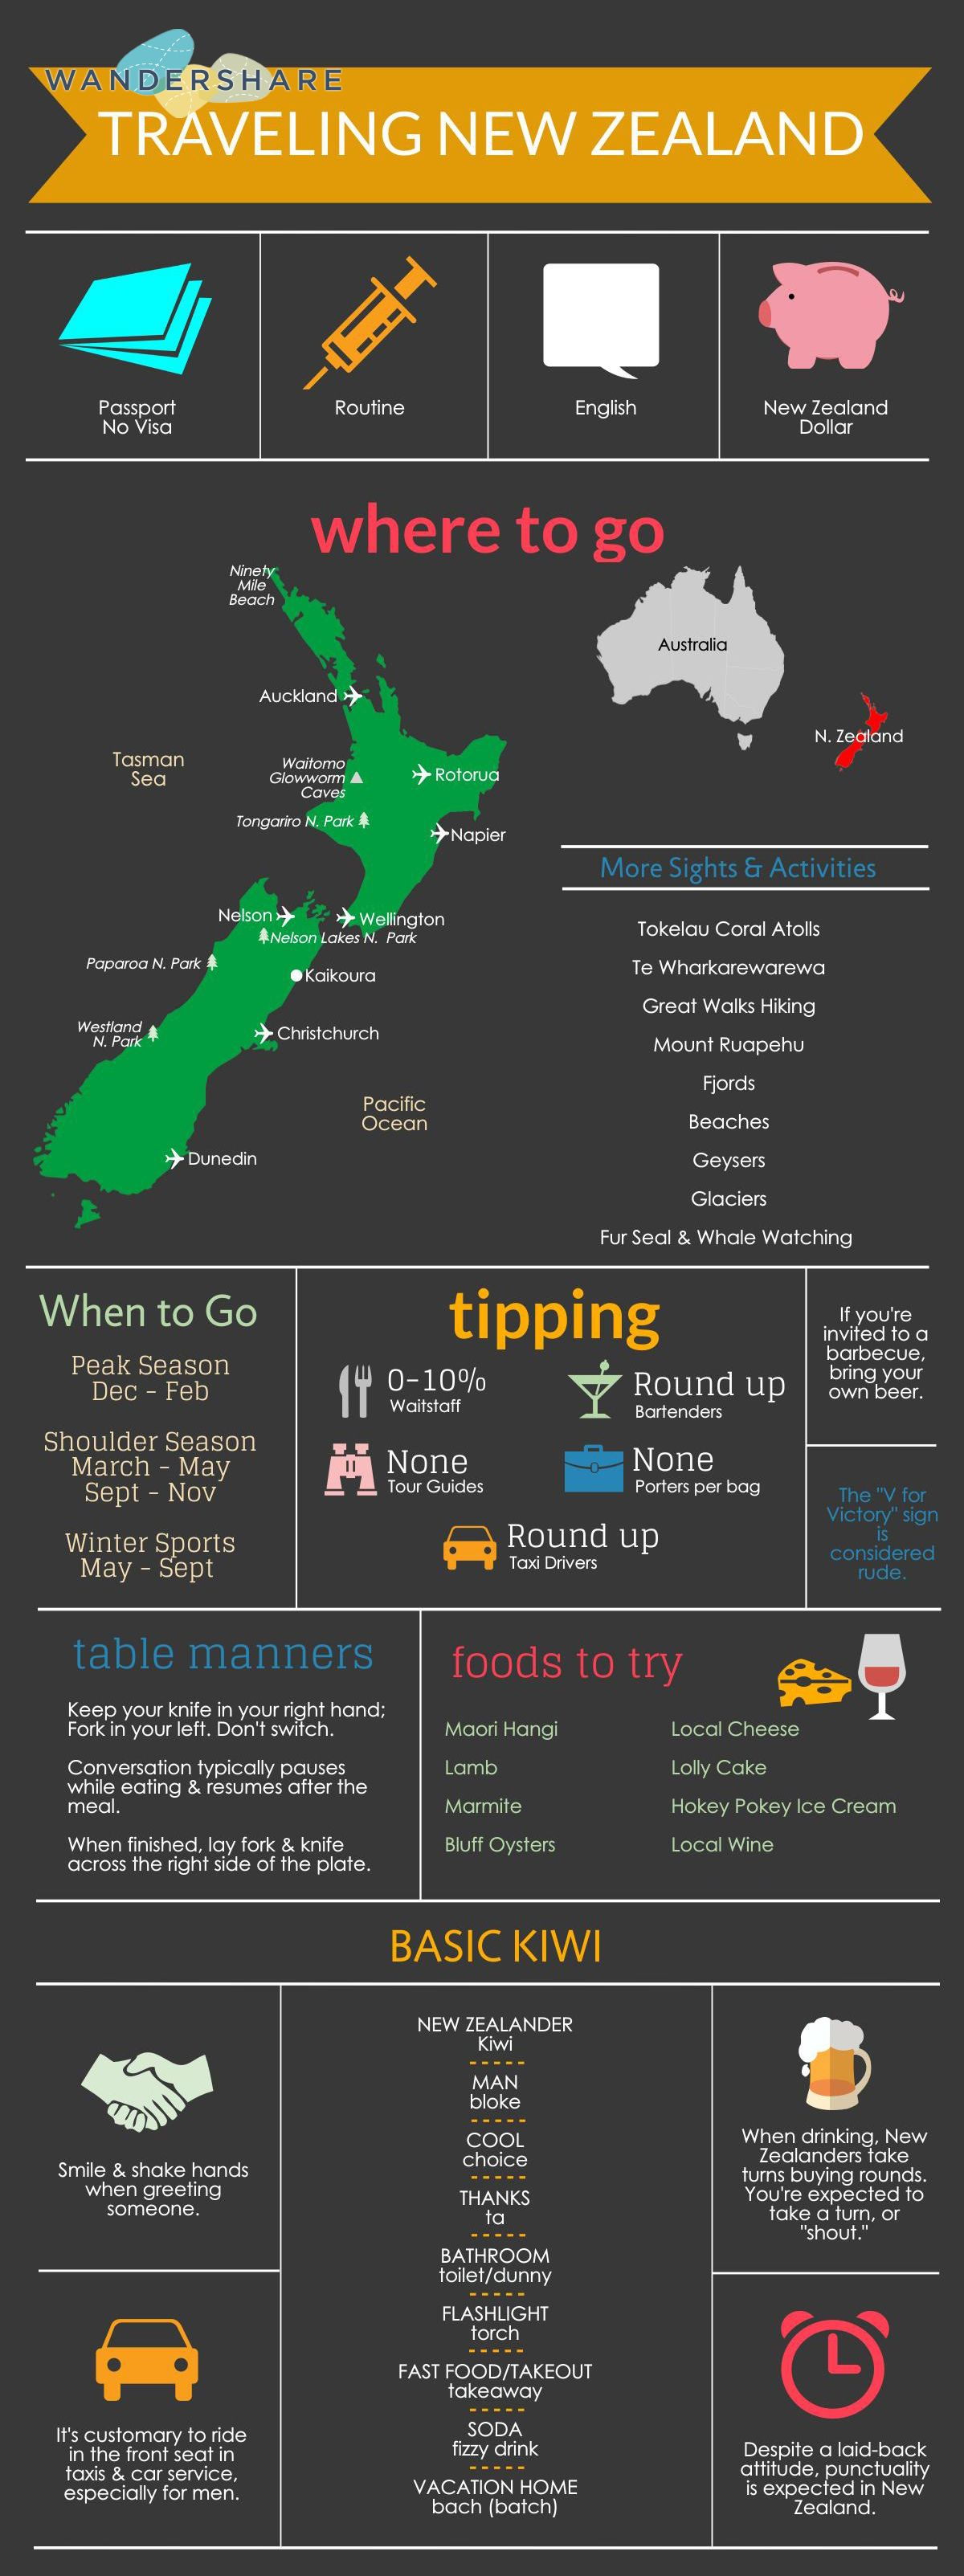 English In Italian: New Zealand Travel Cheat Sheet; Sign Up At Www.wandershare